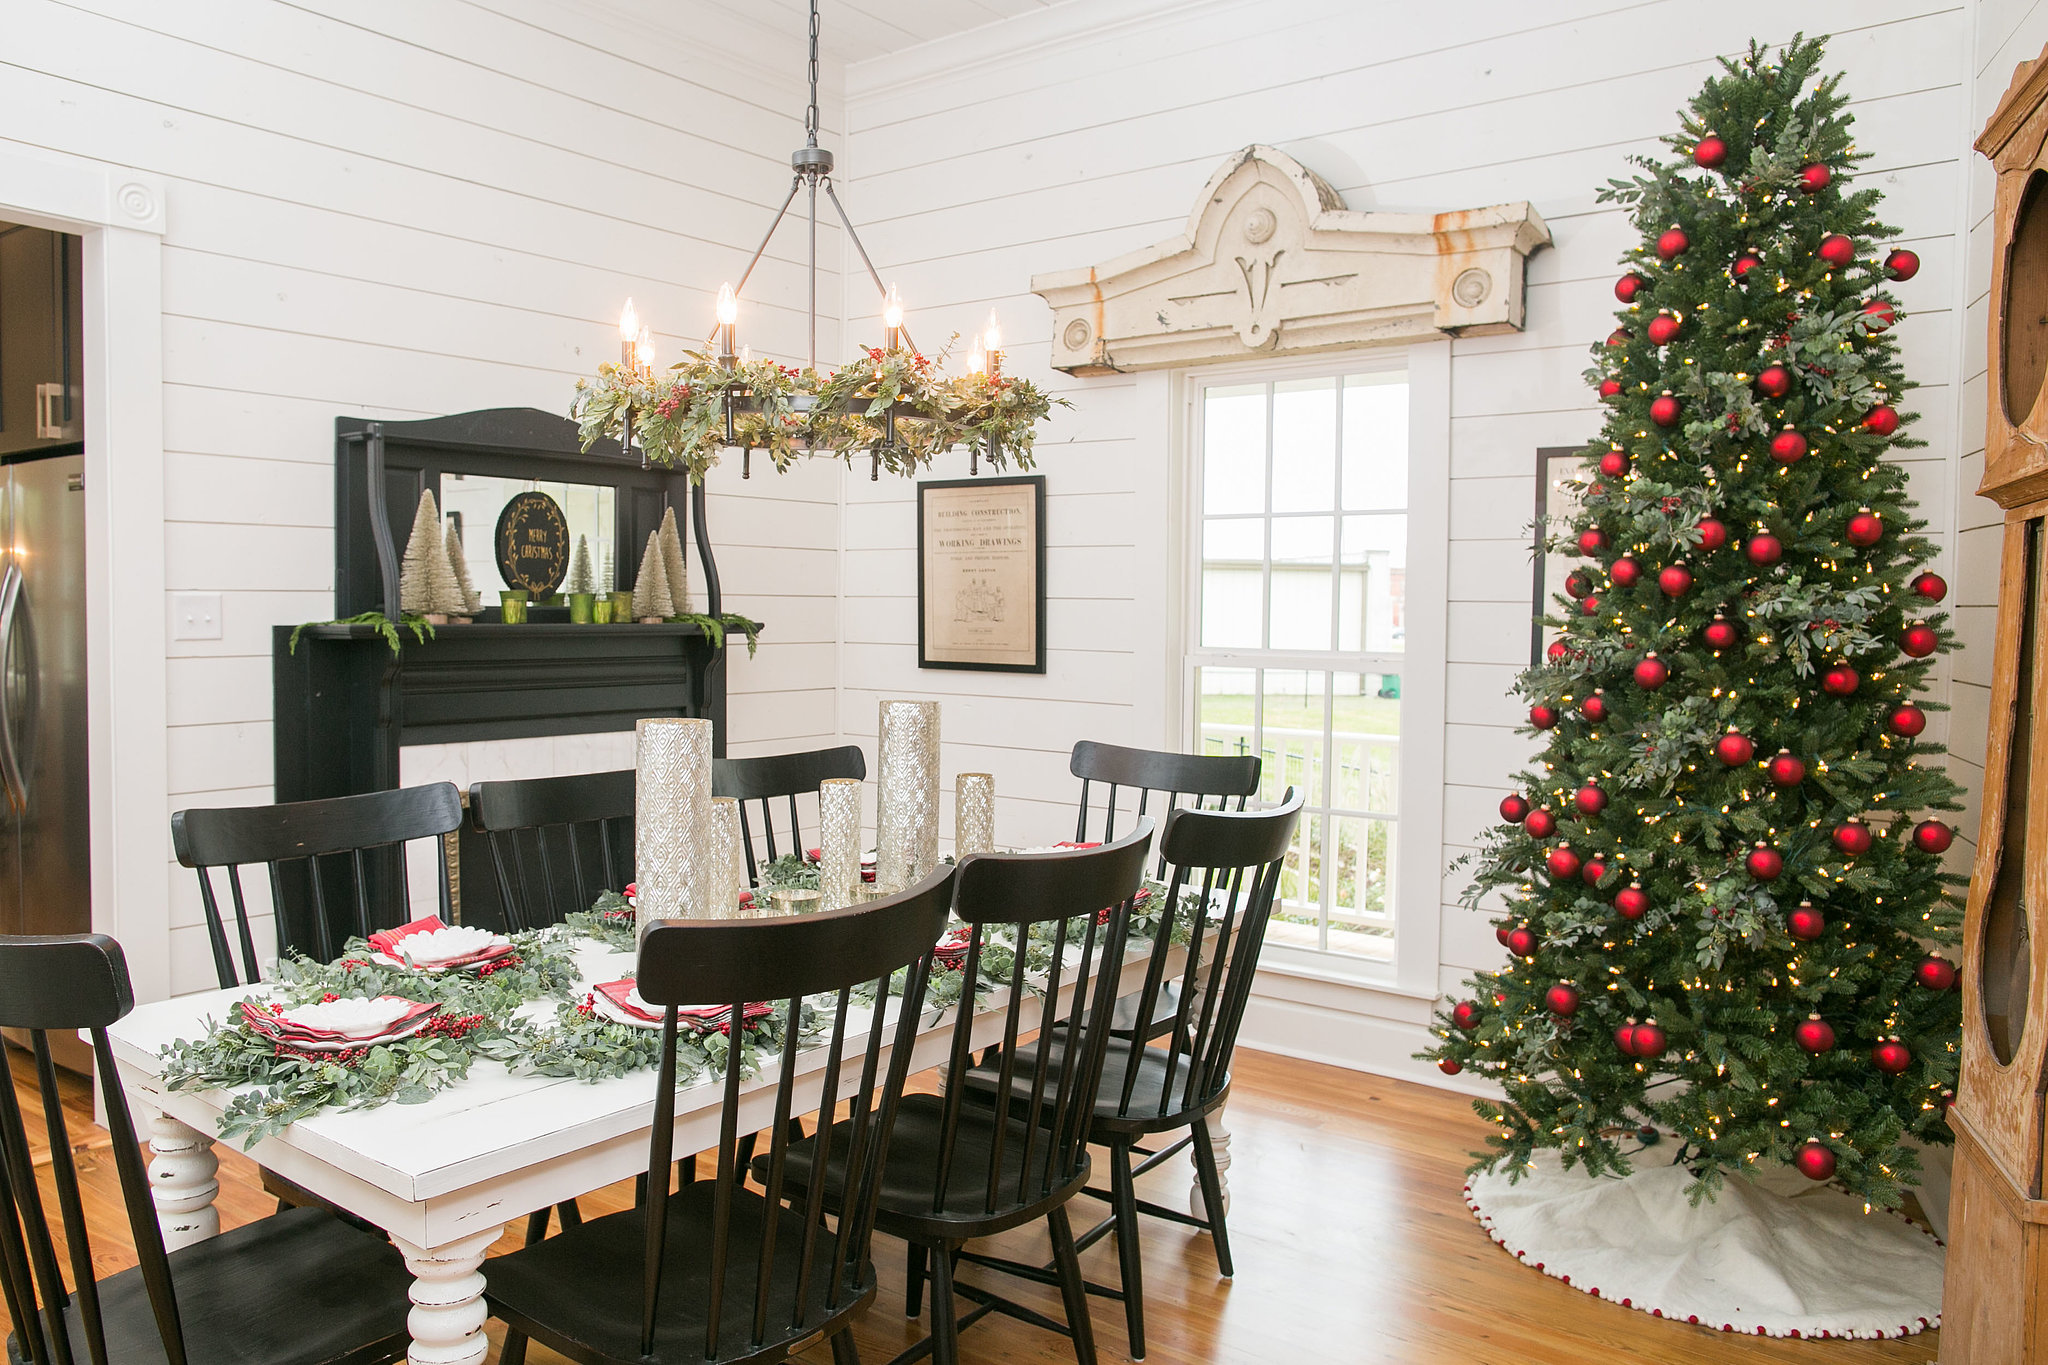 Fixer upper 39 s bed and breakfast on season 3 popsugar home for Fixer upper dining room ideas